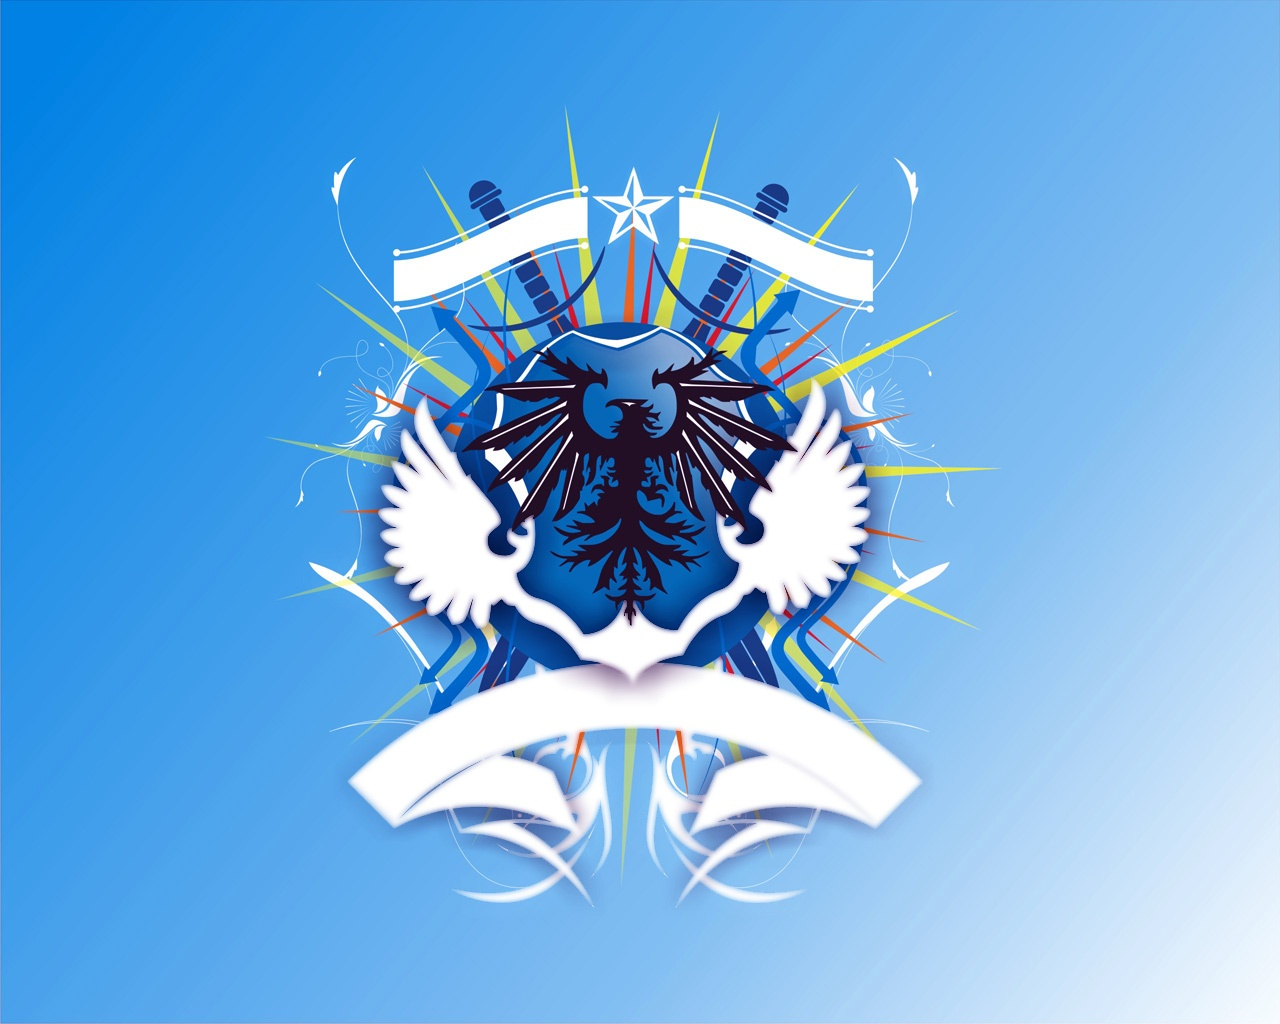 Aviation Wallpaper Iphone X Coat Of Arms Wallpapers Coat Of Arms Stock Photos